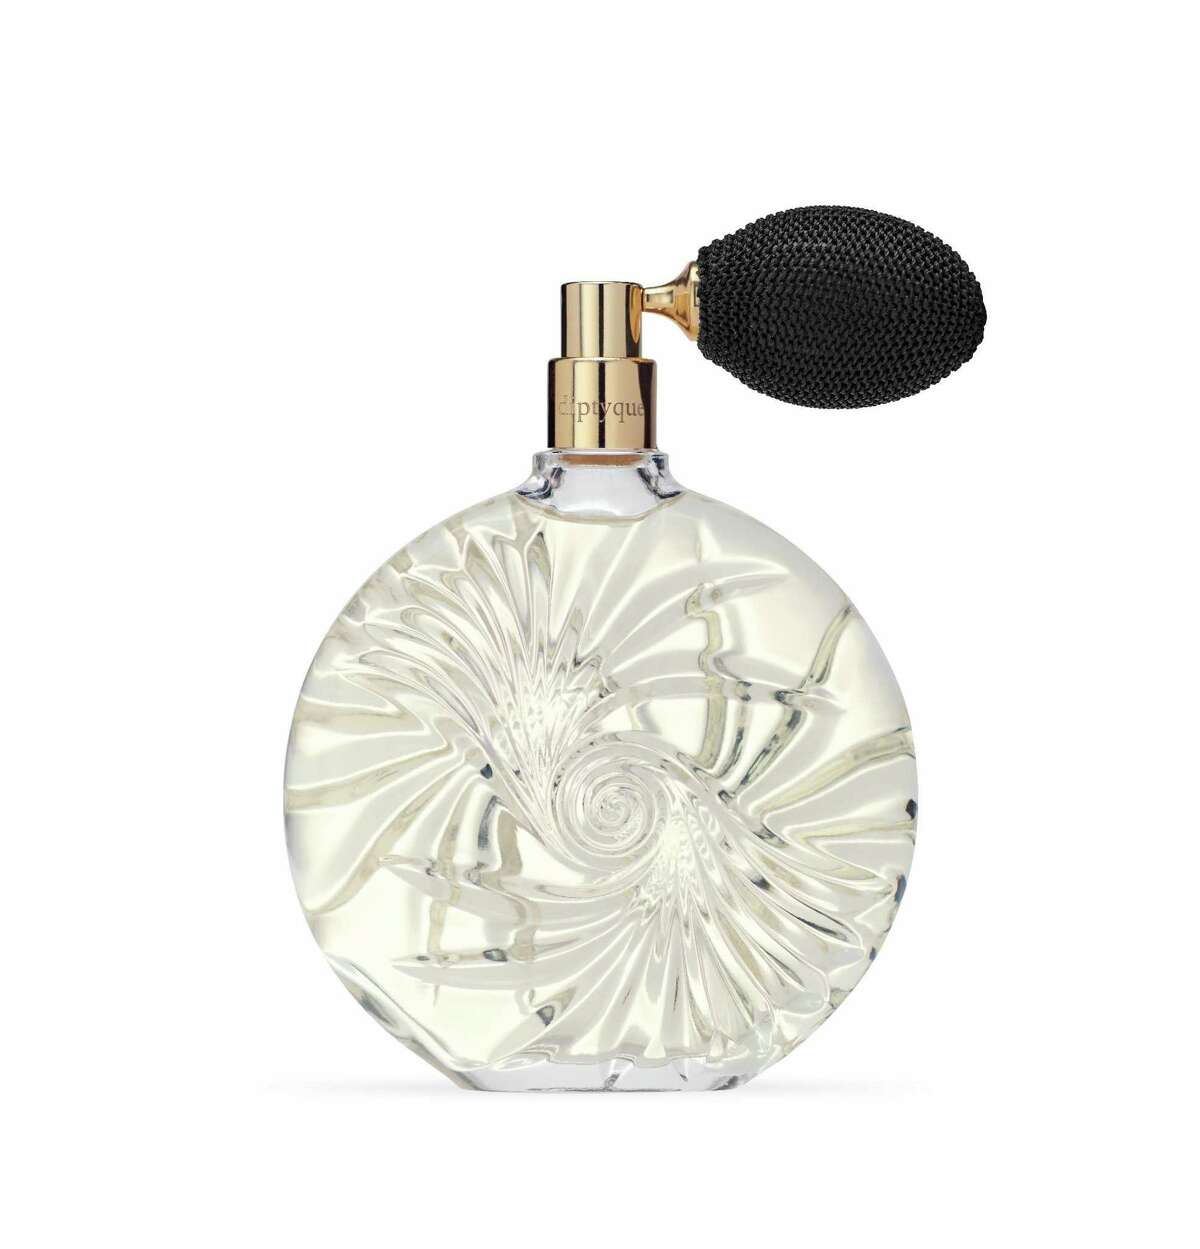 Diptyque Paris Essences Insensées Tiare Flower: The Tahitian gardenia (tiare) is infused with fragiapani, vanilla and pink peppercorn in this lush new chapter of the Essences Insensees collection; $250 a Diptyque boutique, River Oaks District.